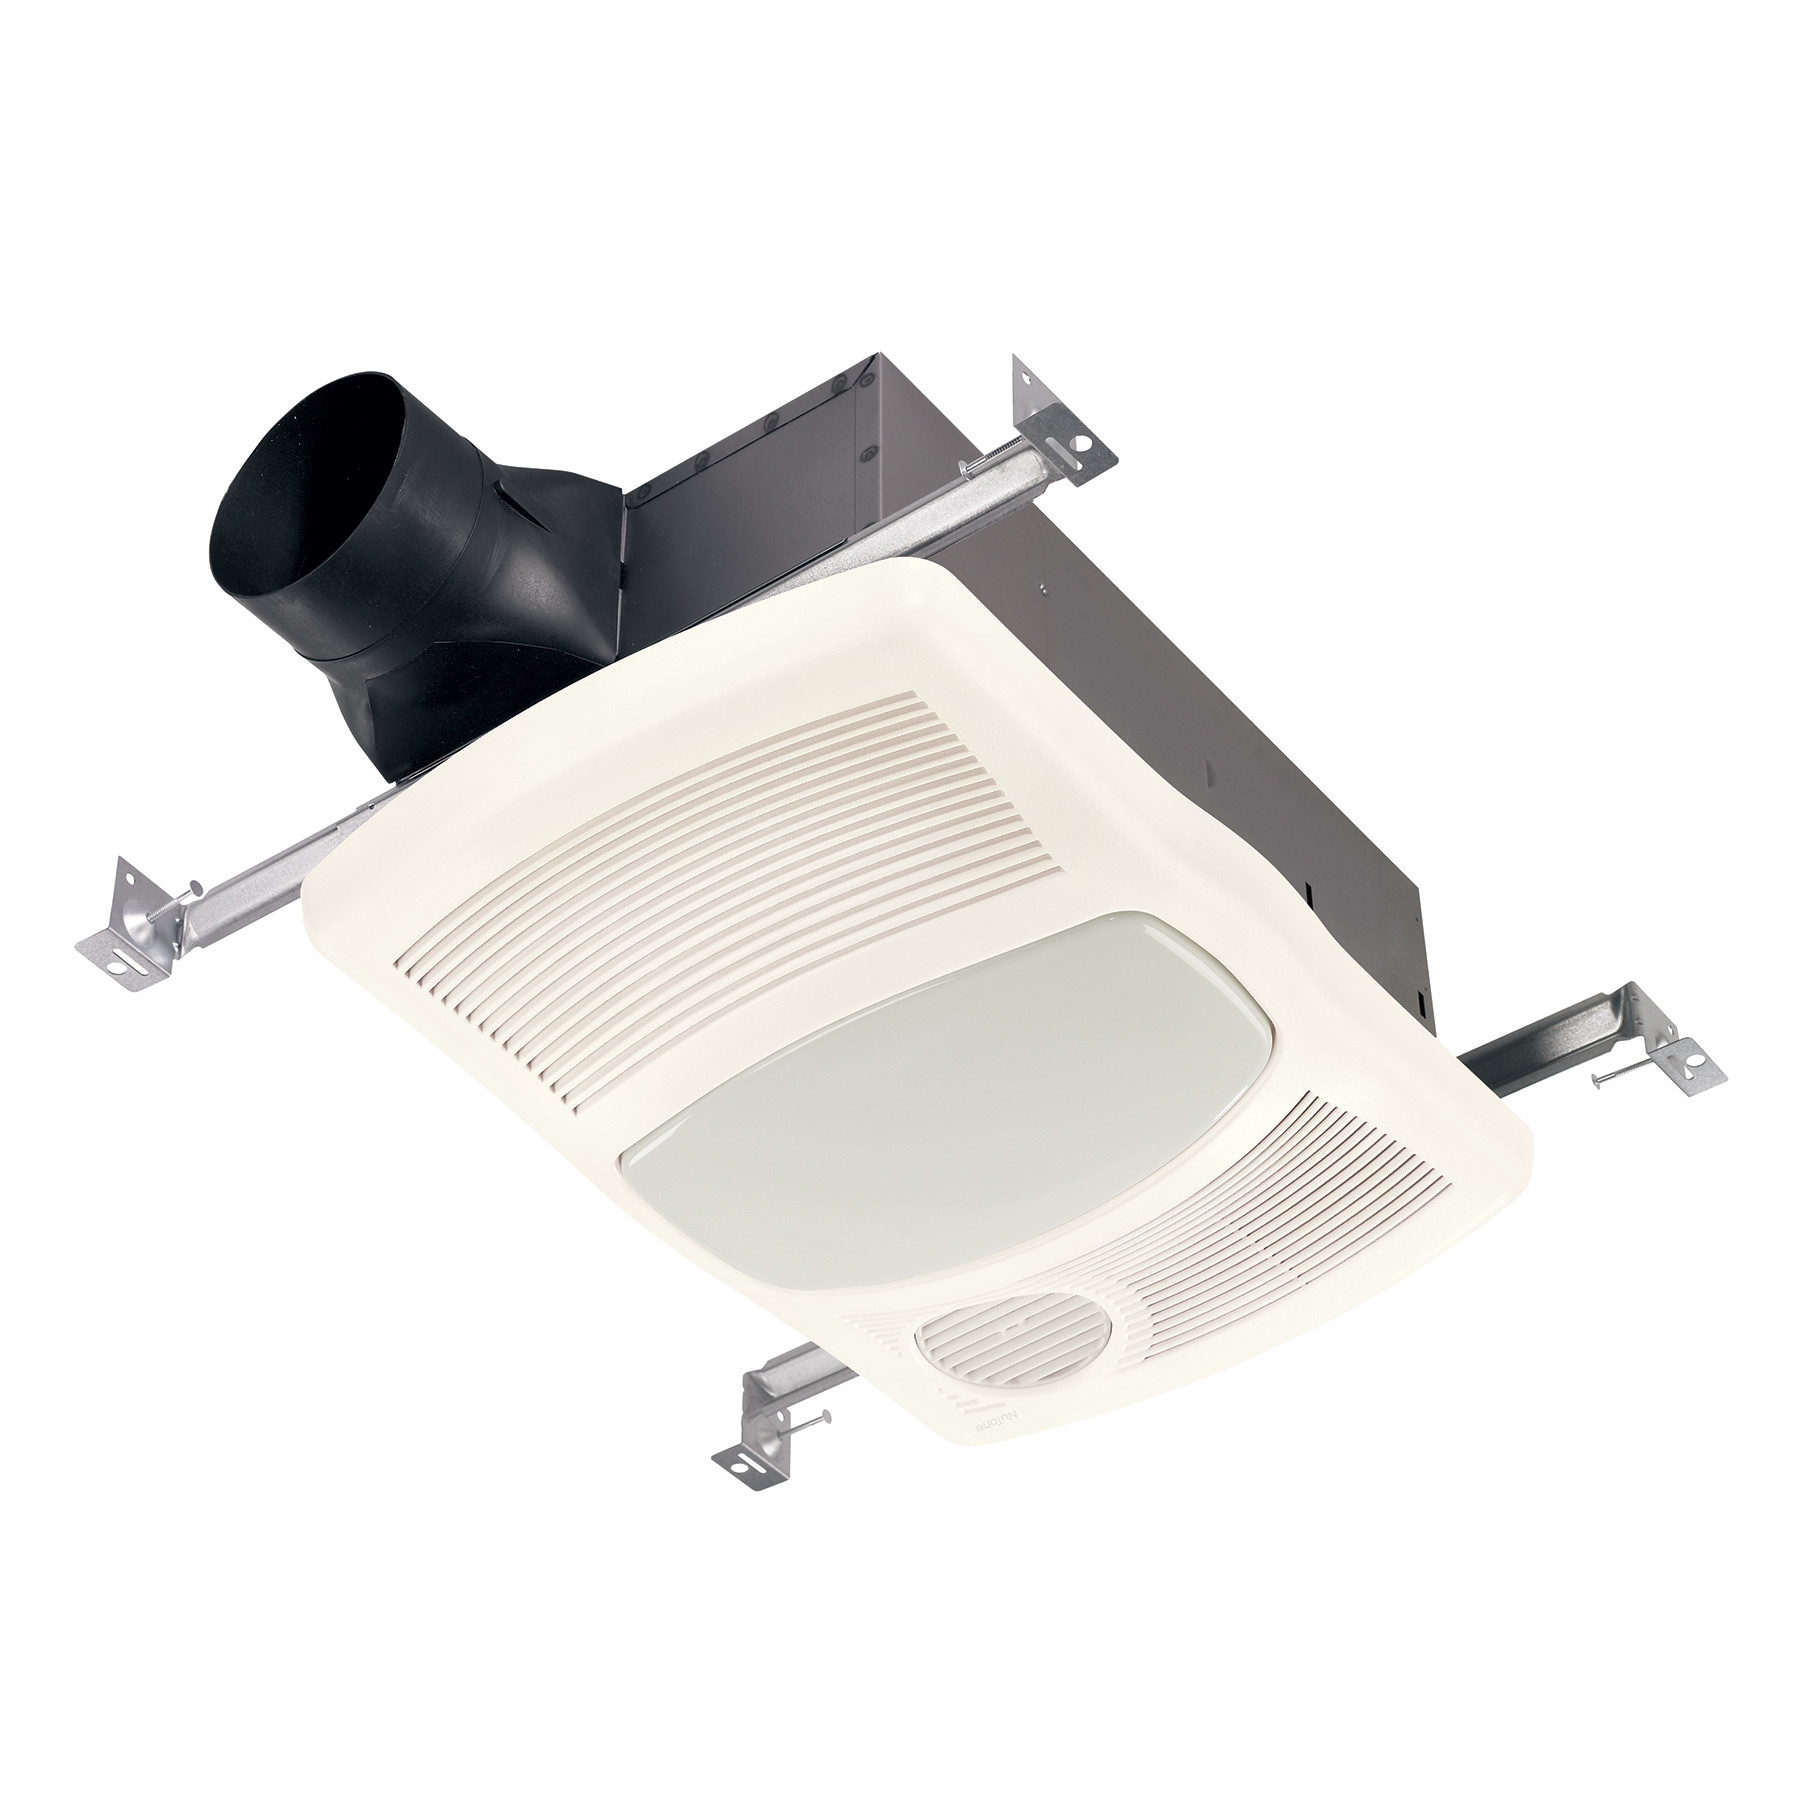 Broan-nutone Llc | Broan Bathroom Fan | Broan Bathroom Fans